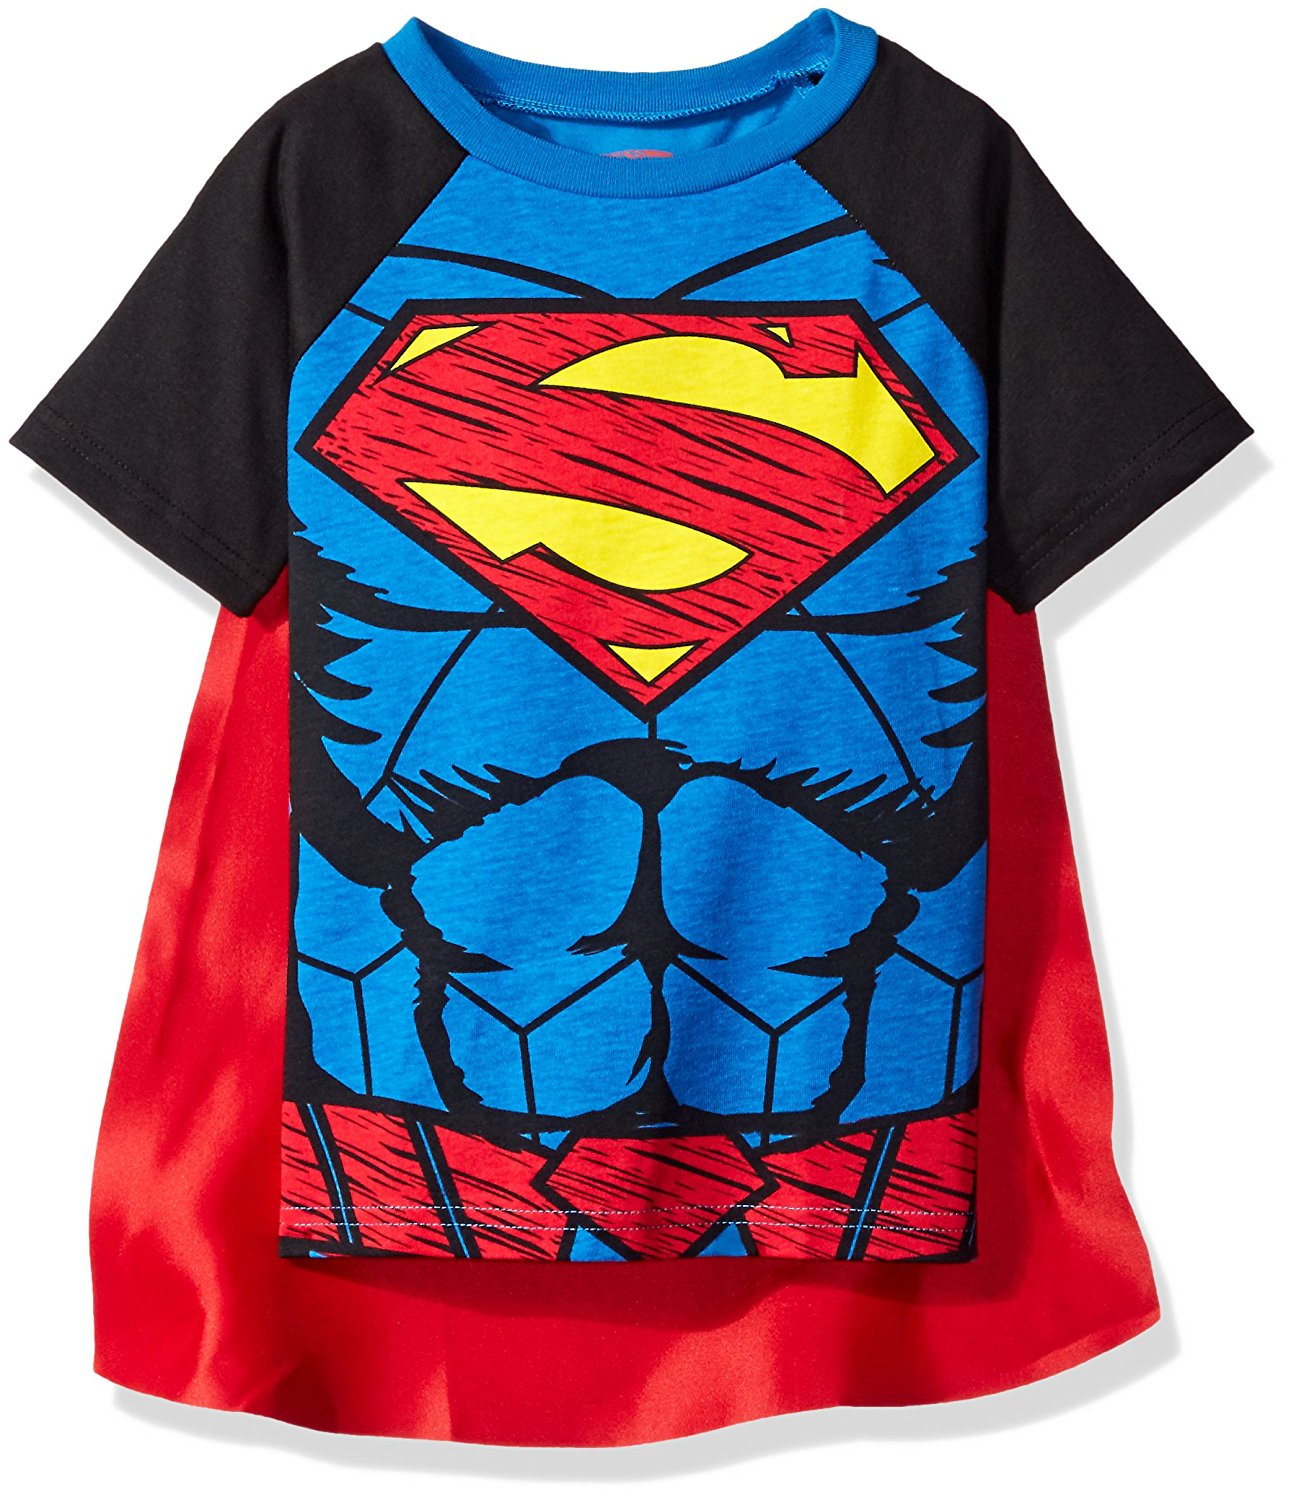 0aff9b805 Superman T Shirt With Detachable Cape – EDGE Engineering and ...